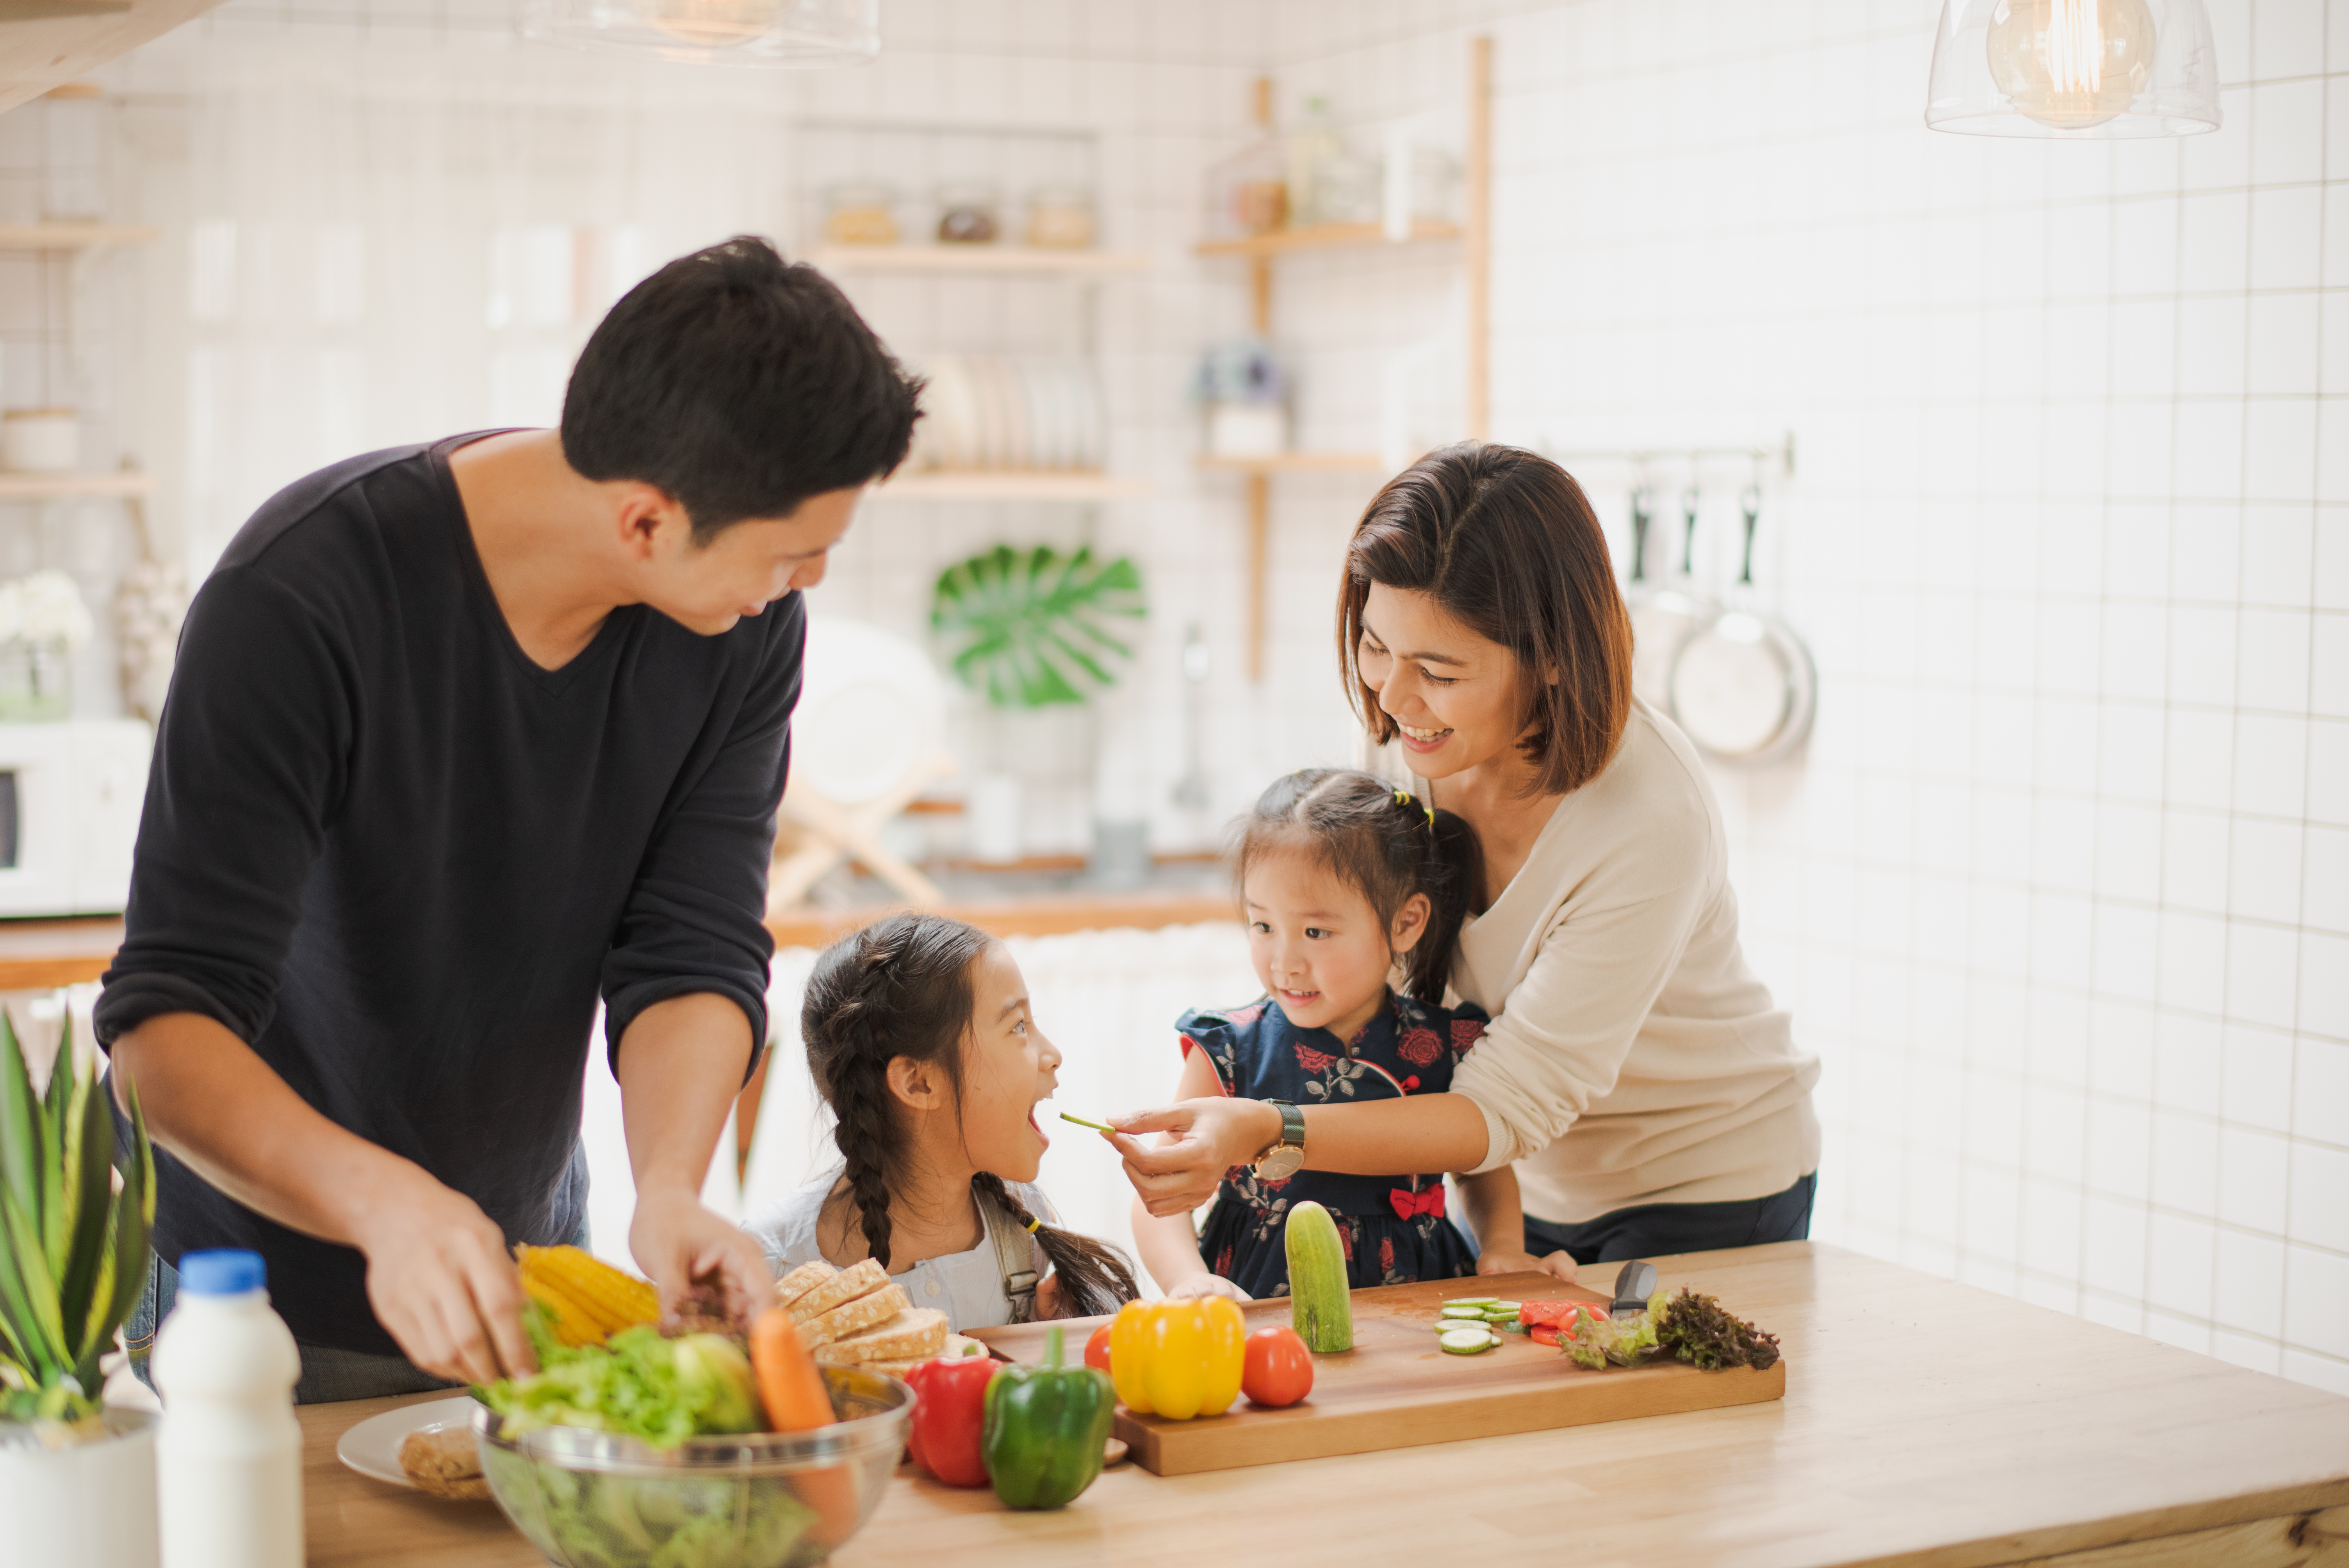 Toddler has become Picky Eater: Getting him to eat healthy food?